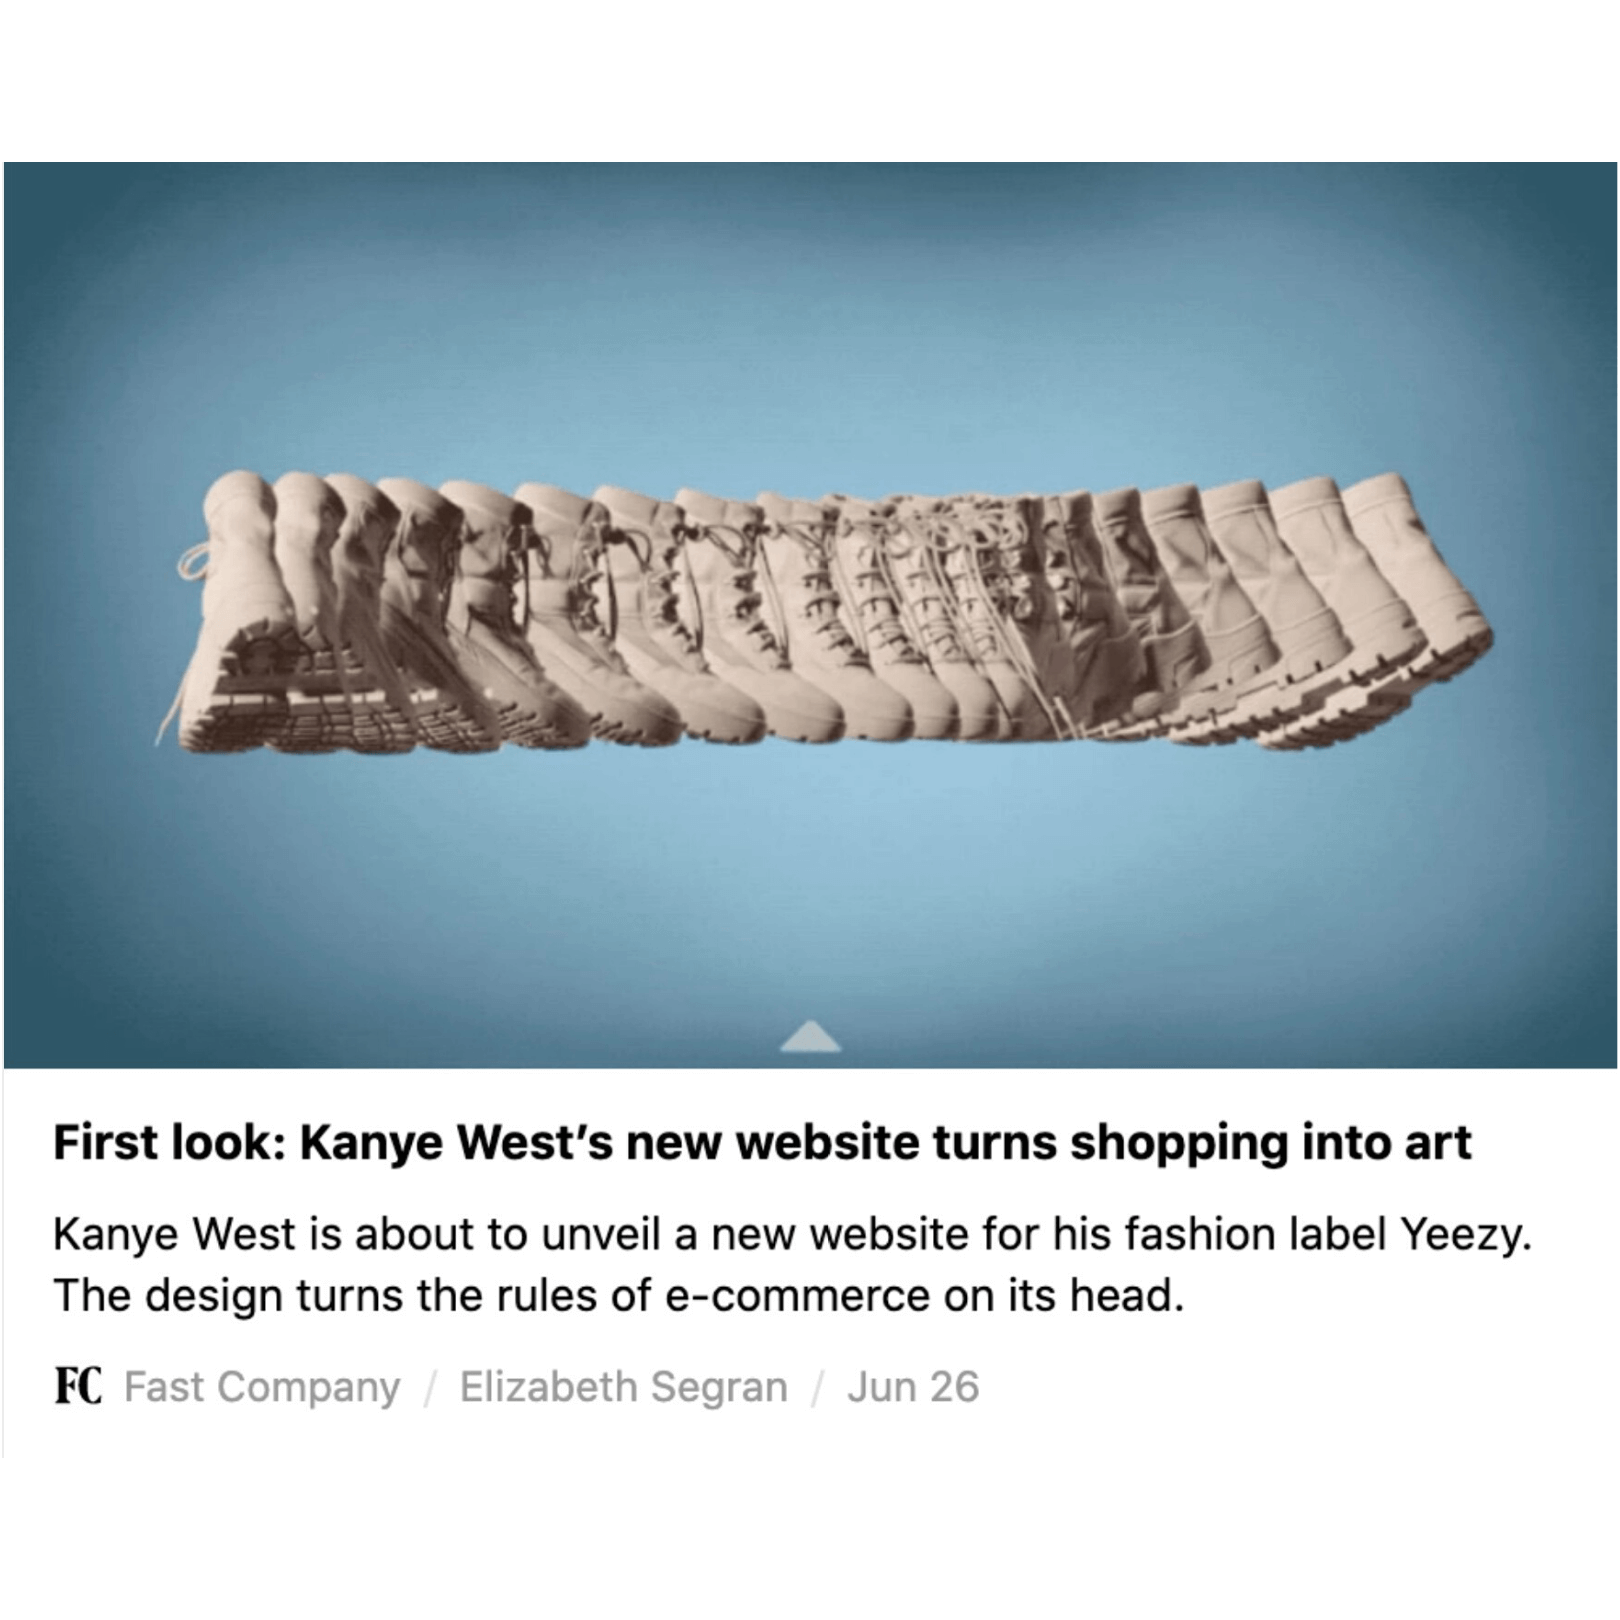 space66-content-social-marketing-agency-kanye-tech